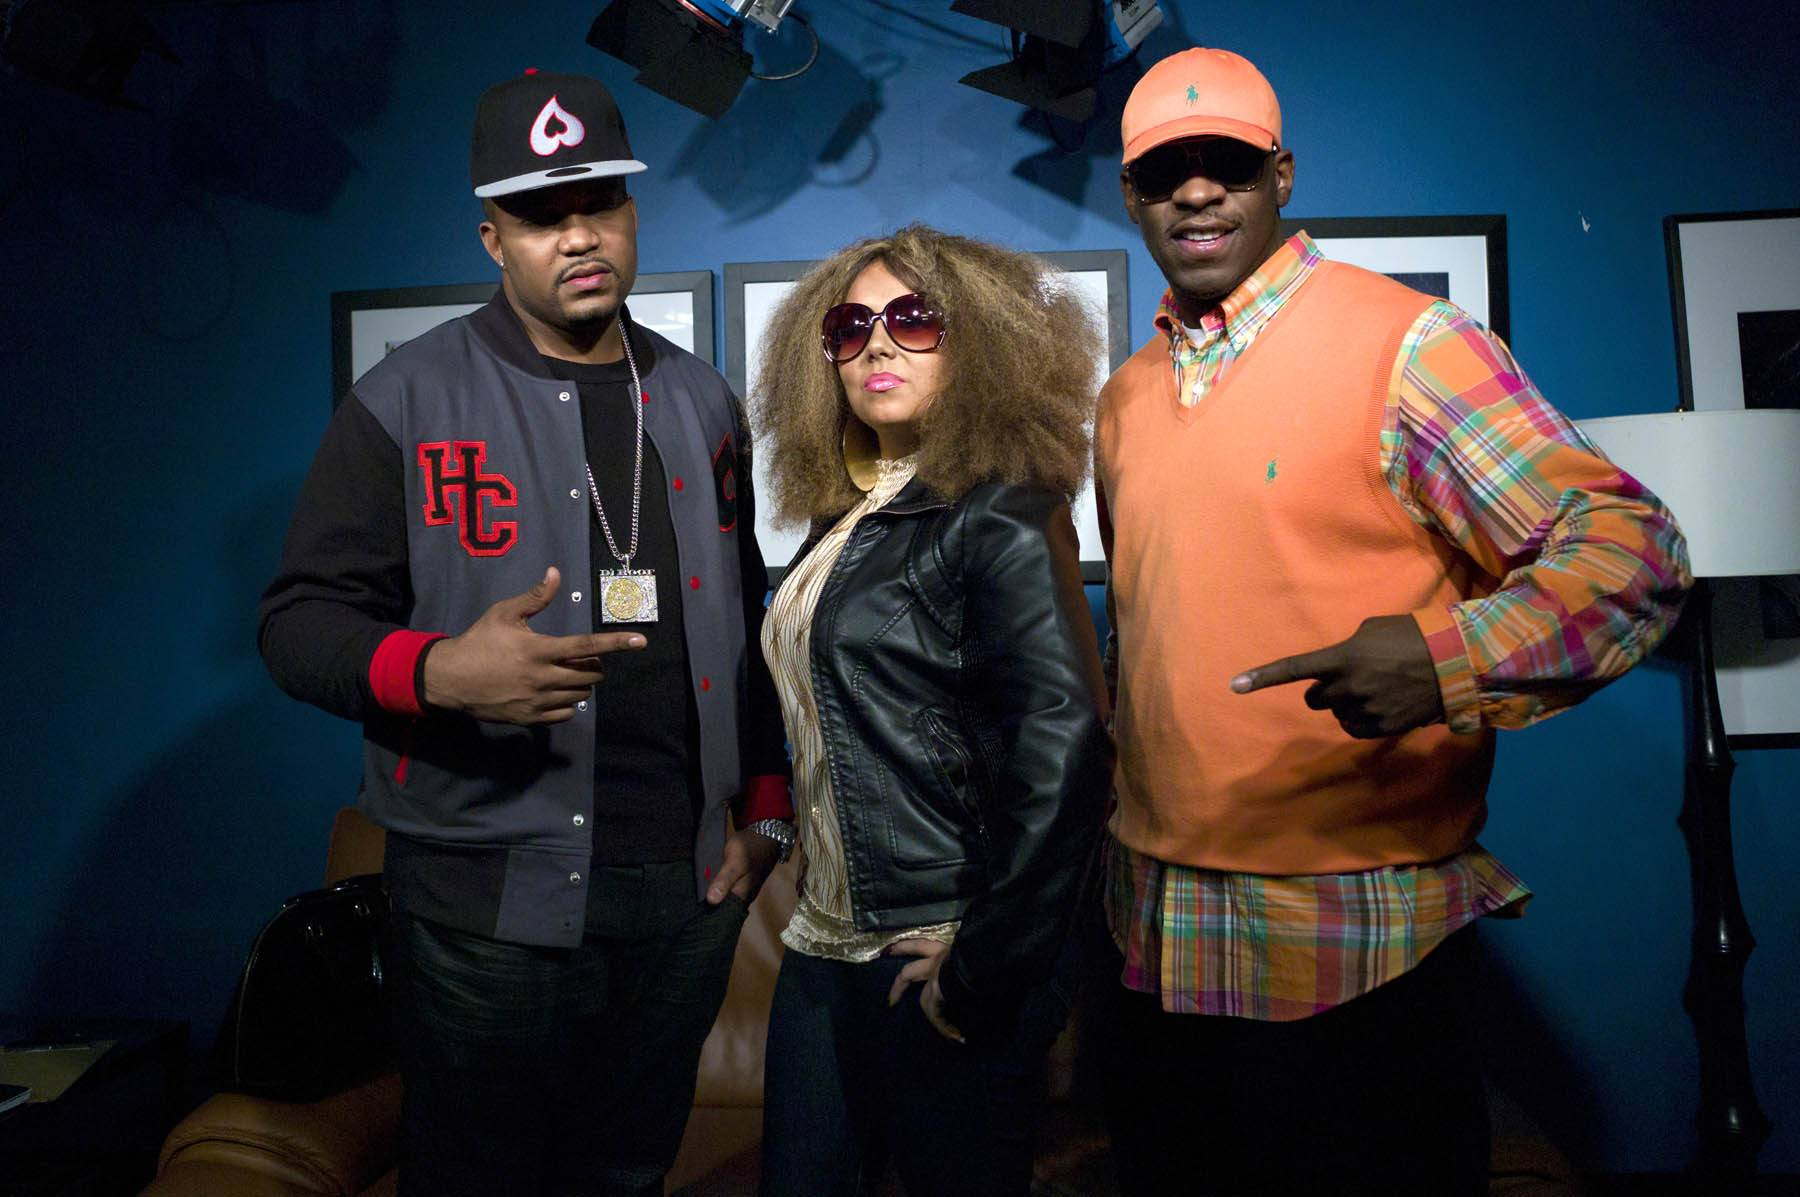 A-Town Is Here - DJ Boof and Young Dro with Amanda D in the green room at 106 & Park, January 27, 2012. (Photo: John Ricard / BET)